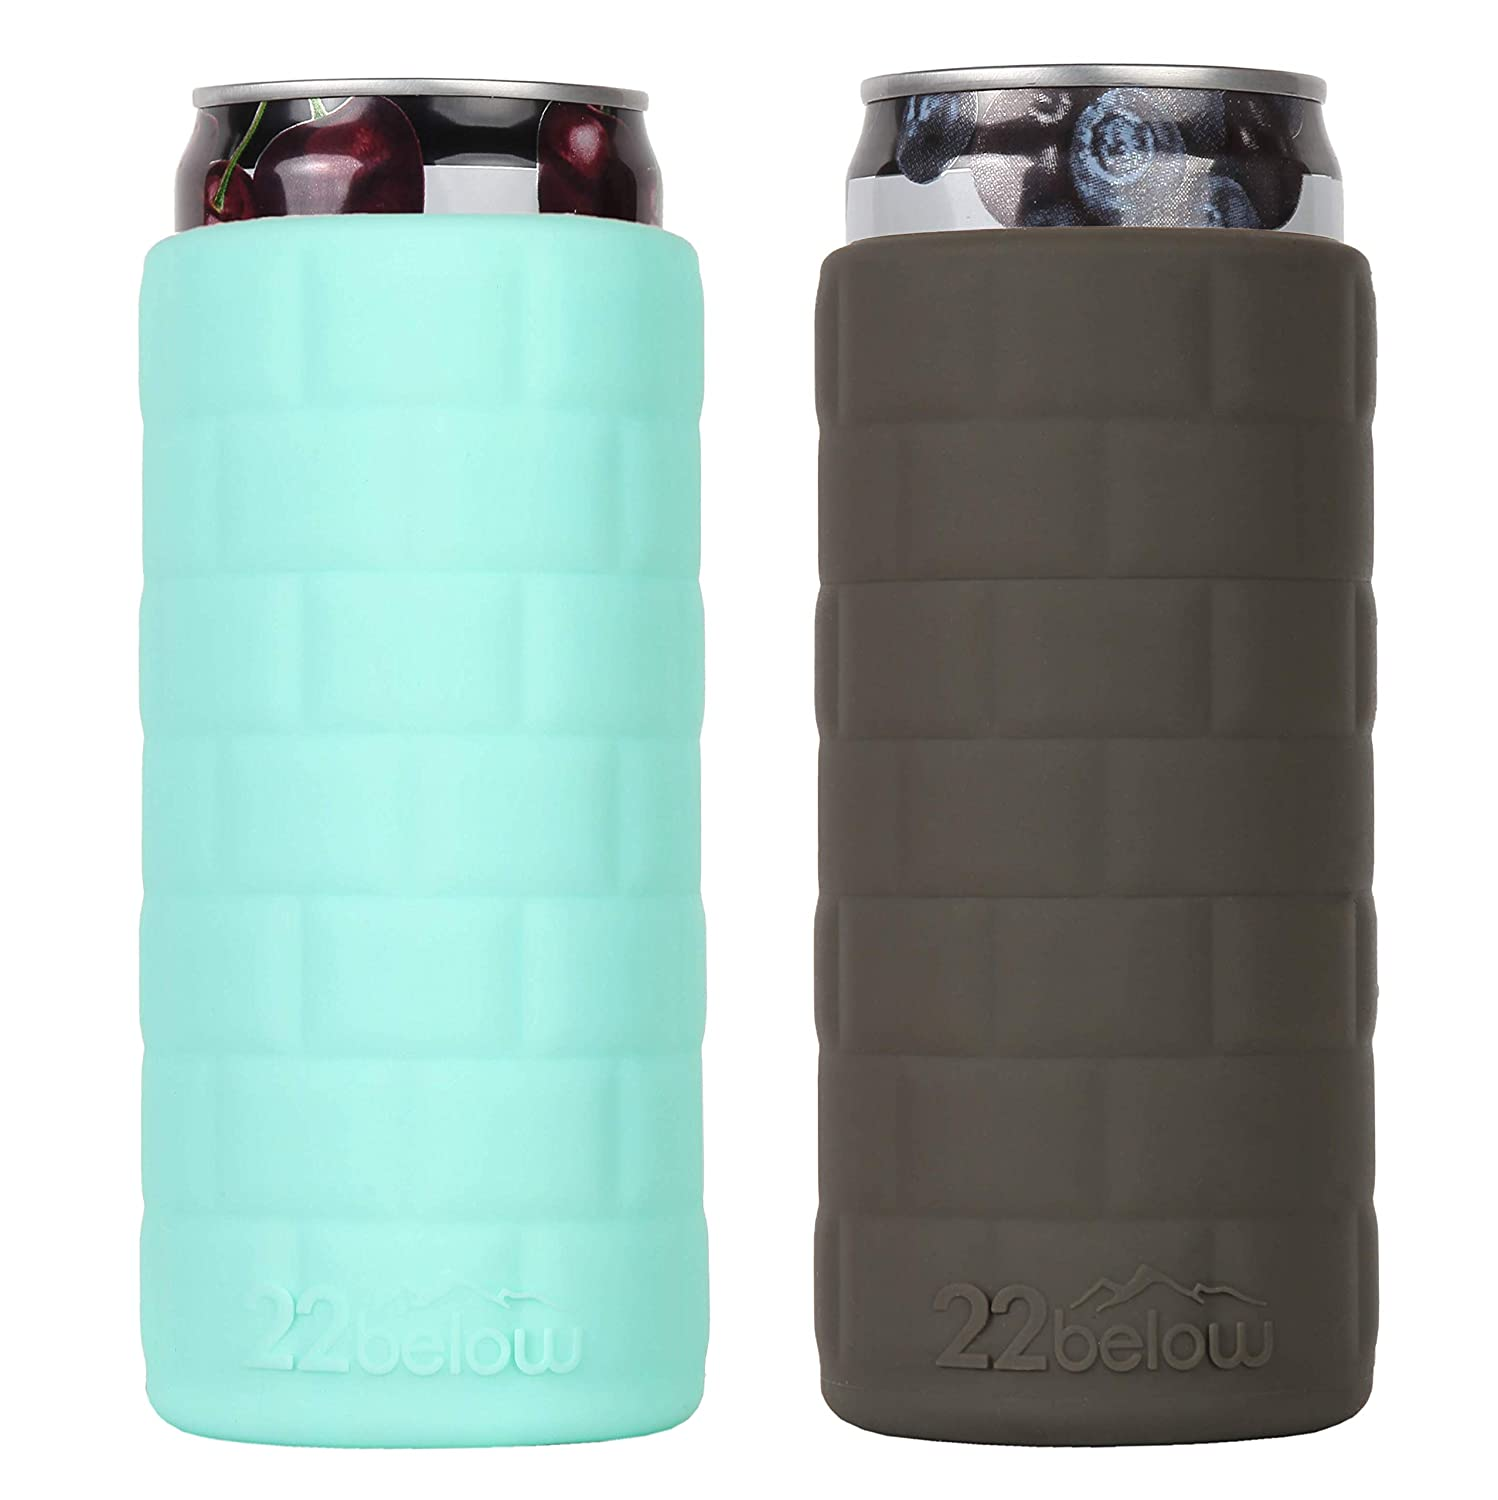 Standard Can Flexible Soft Touch Silicone Insulated Cooler Arctic White 22below